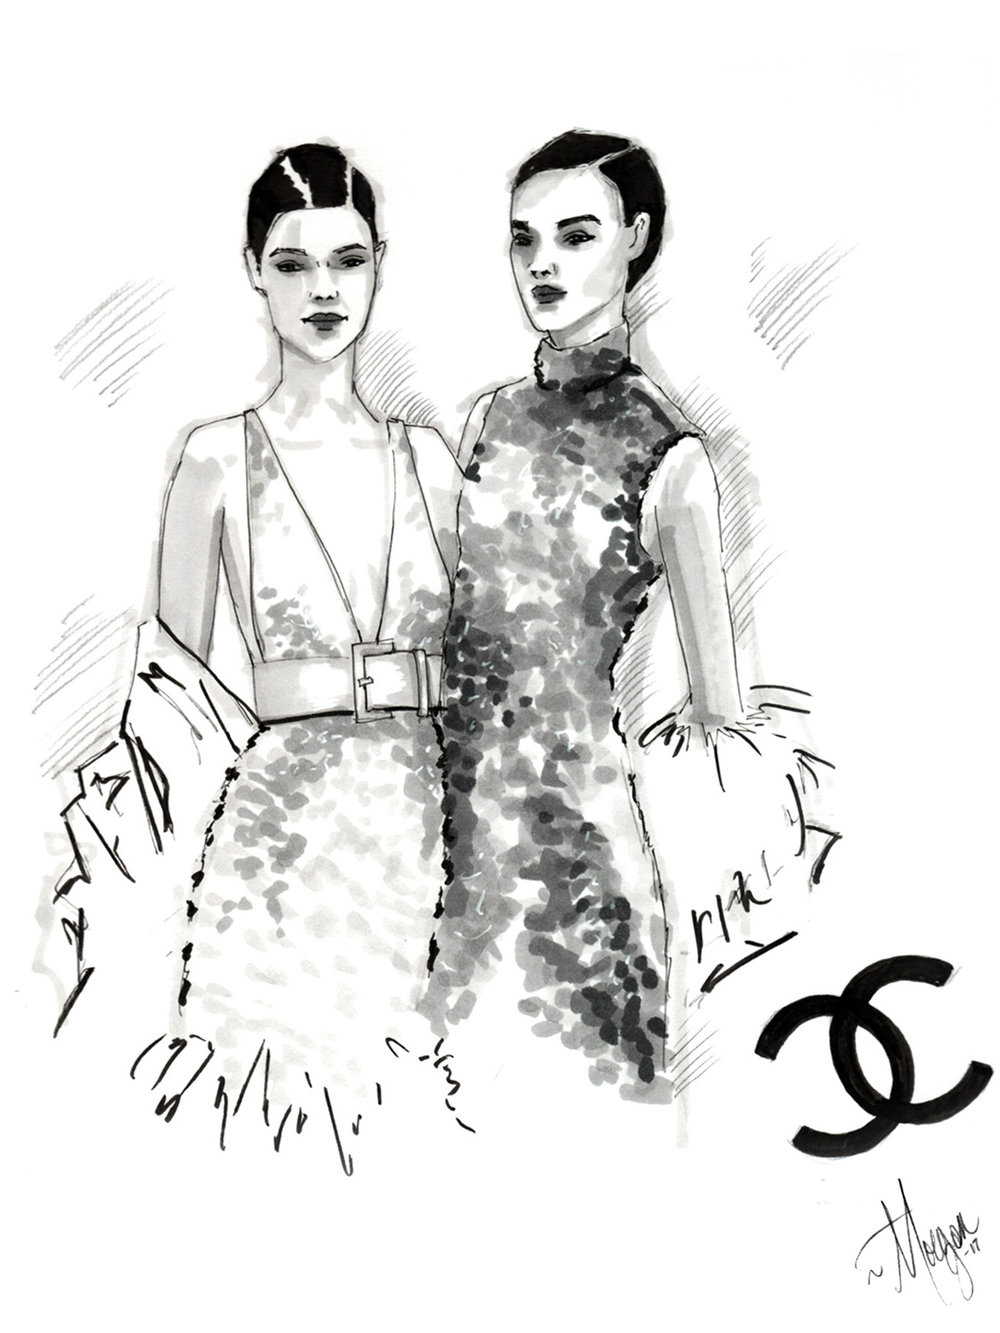 chanel-fw2017-illustration-morgan-swank-studio.jpg